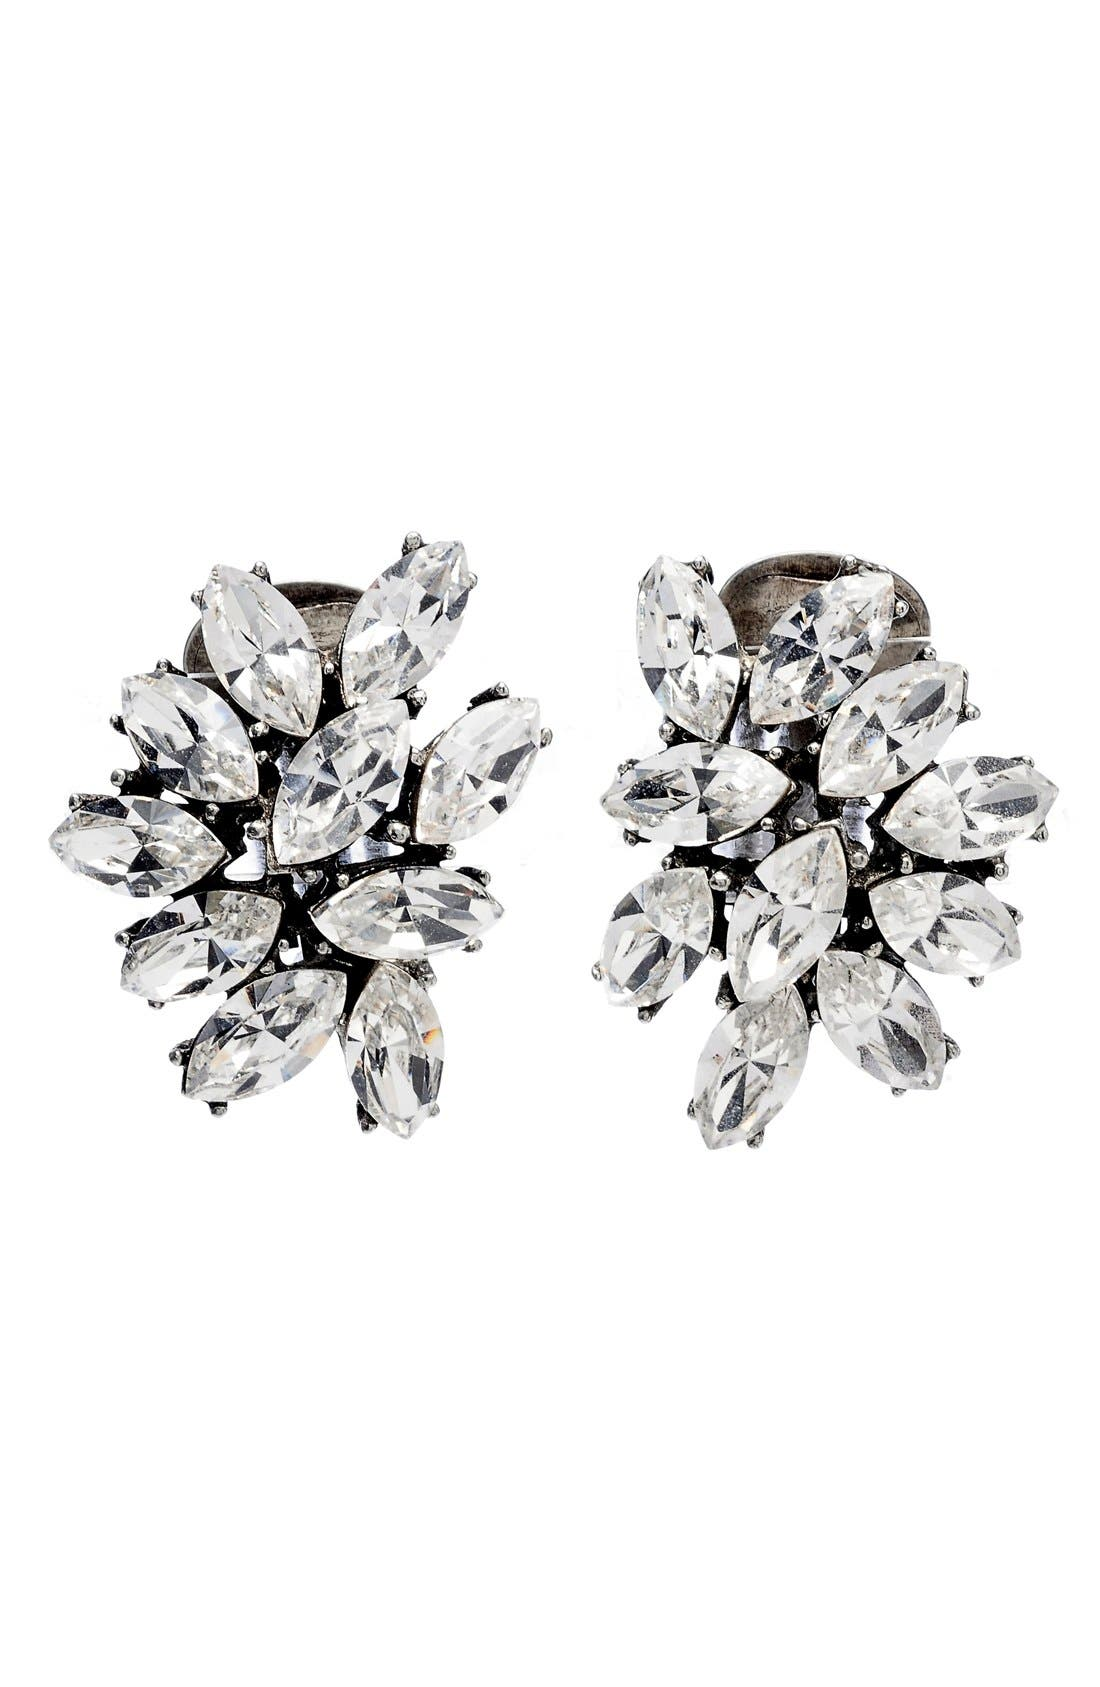 Swarovski Crystal Cluster Clip Earrings,                             Main thumbnail 1, color,                             SILVER